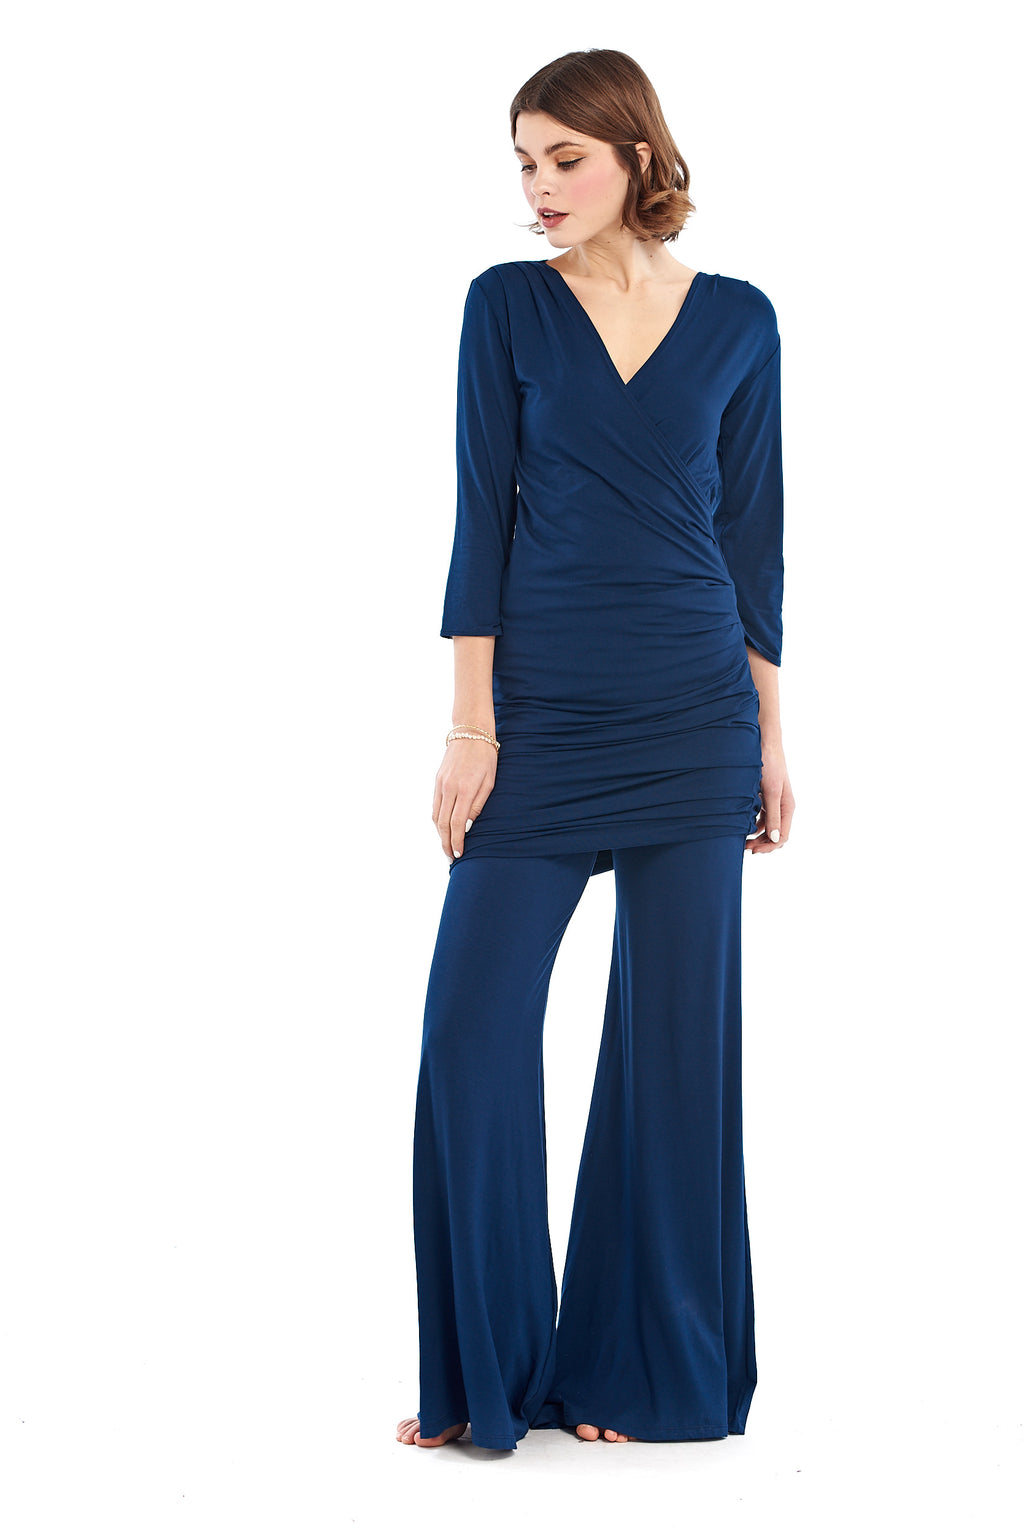 Bamboo Crossover Dress Navy - MUDRA